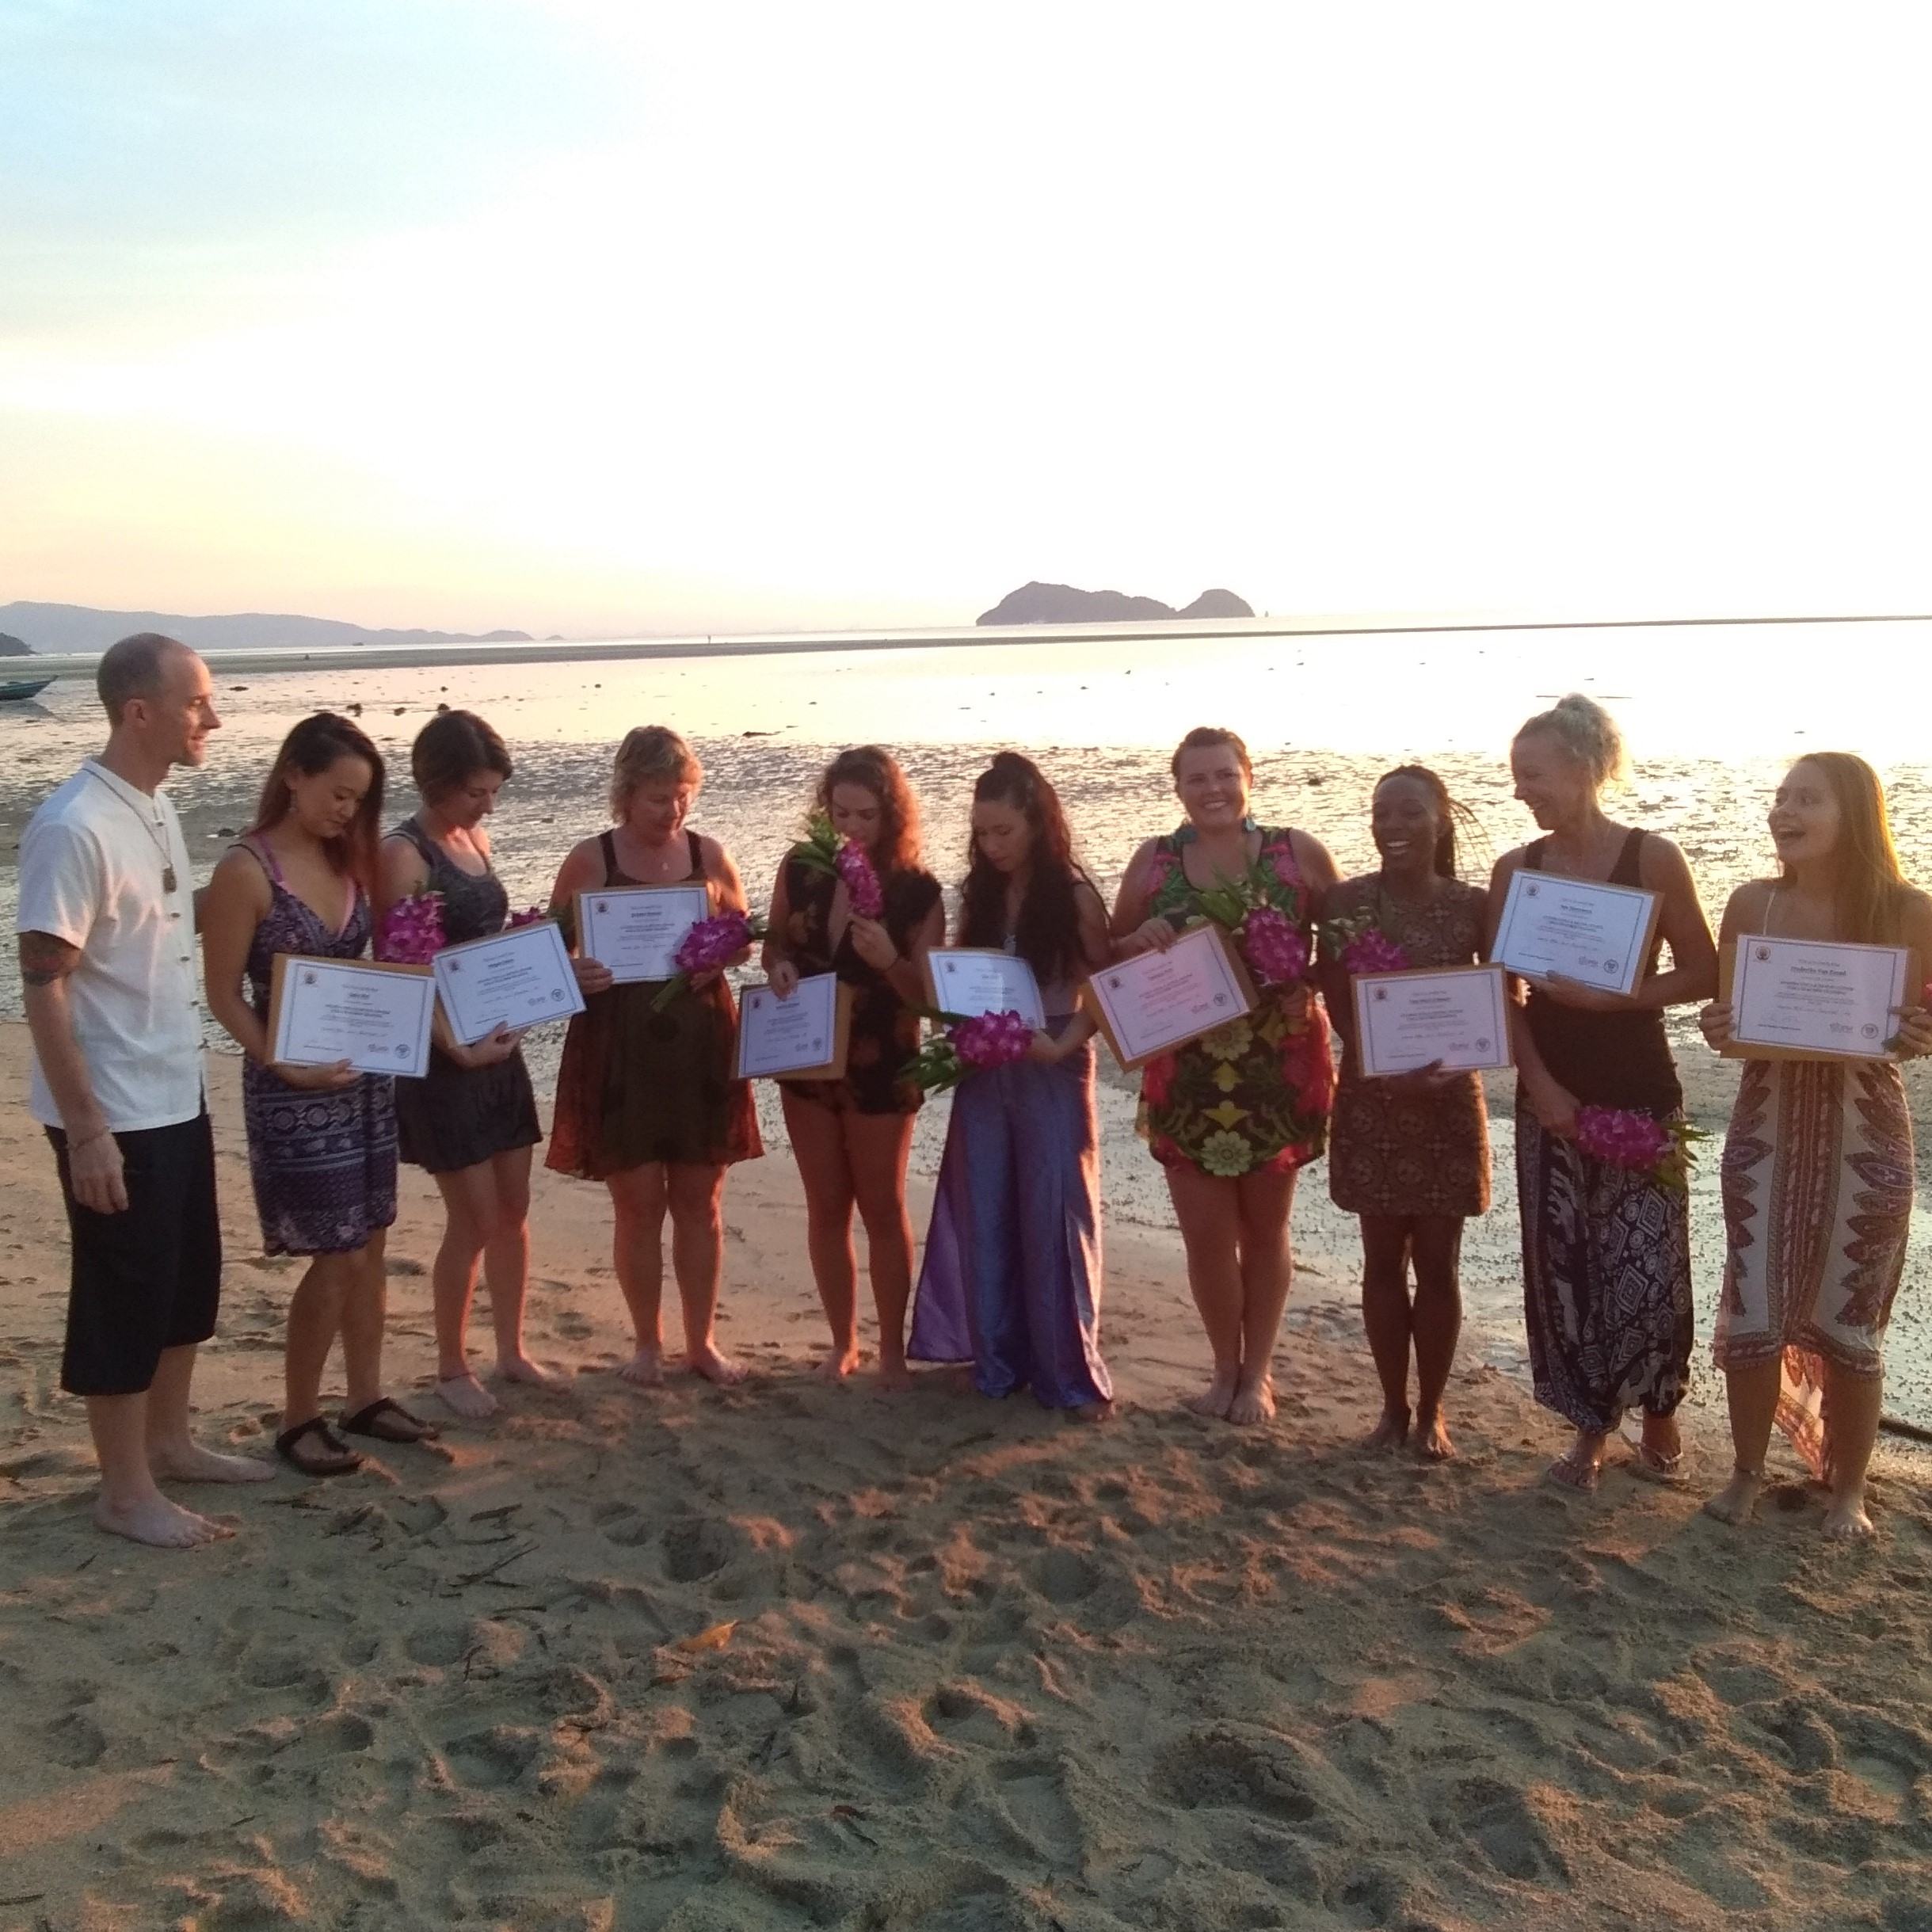 November 2017: Yoga teachers training - So much love and pride for this intense month with these nine freshly graduated Yoga teachers at Johnny Nasello's Yoga Teacher Training Certification program in Ananda Yoga & Detox center in Koh Phangan. lrina is still teaching various workshops like 'Energy healing' and 'Meditation speed-date' for Teacher Trainings and Yoga teacher coaching.'Yoga Teacher Mentorship Program' by Yogirina is coming soon. Look for more info in 'YOGA TEACHERS' section.Ask for more info: irina@irinayogacoach.com